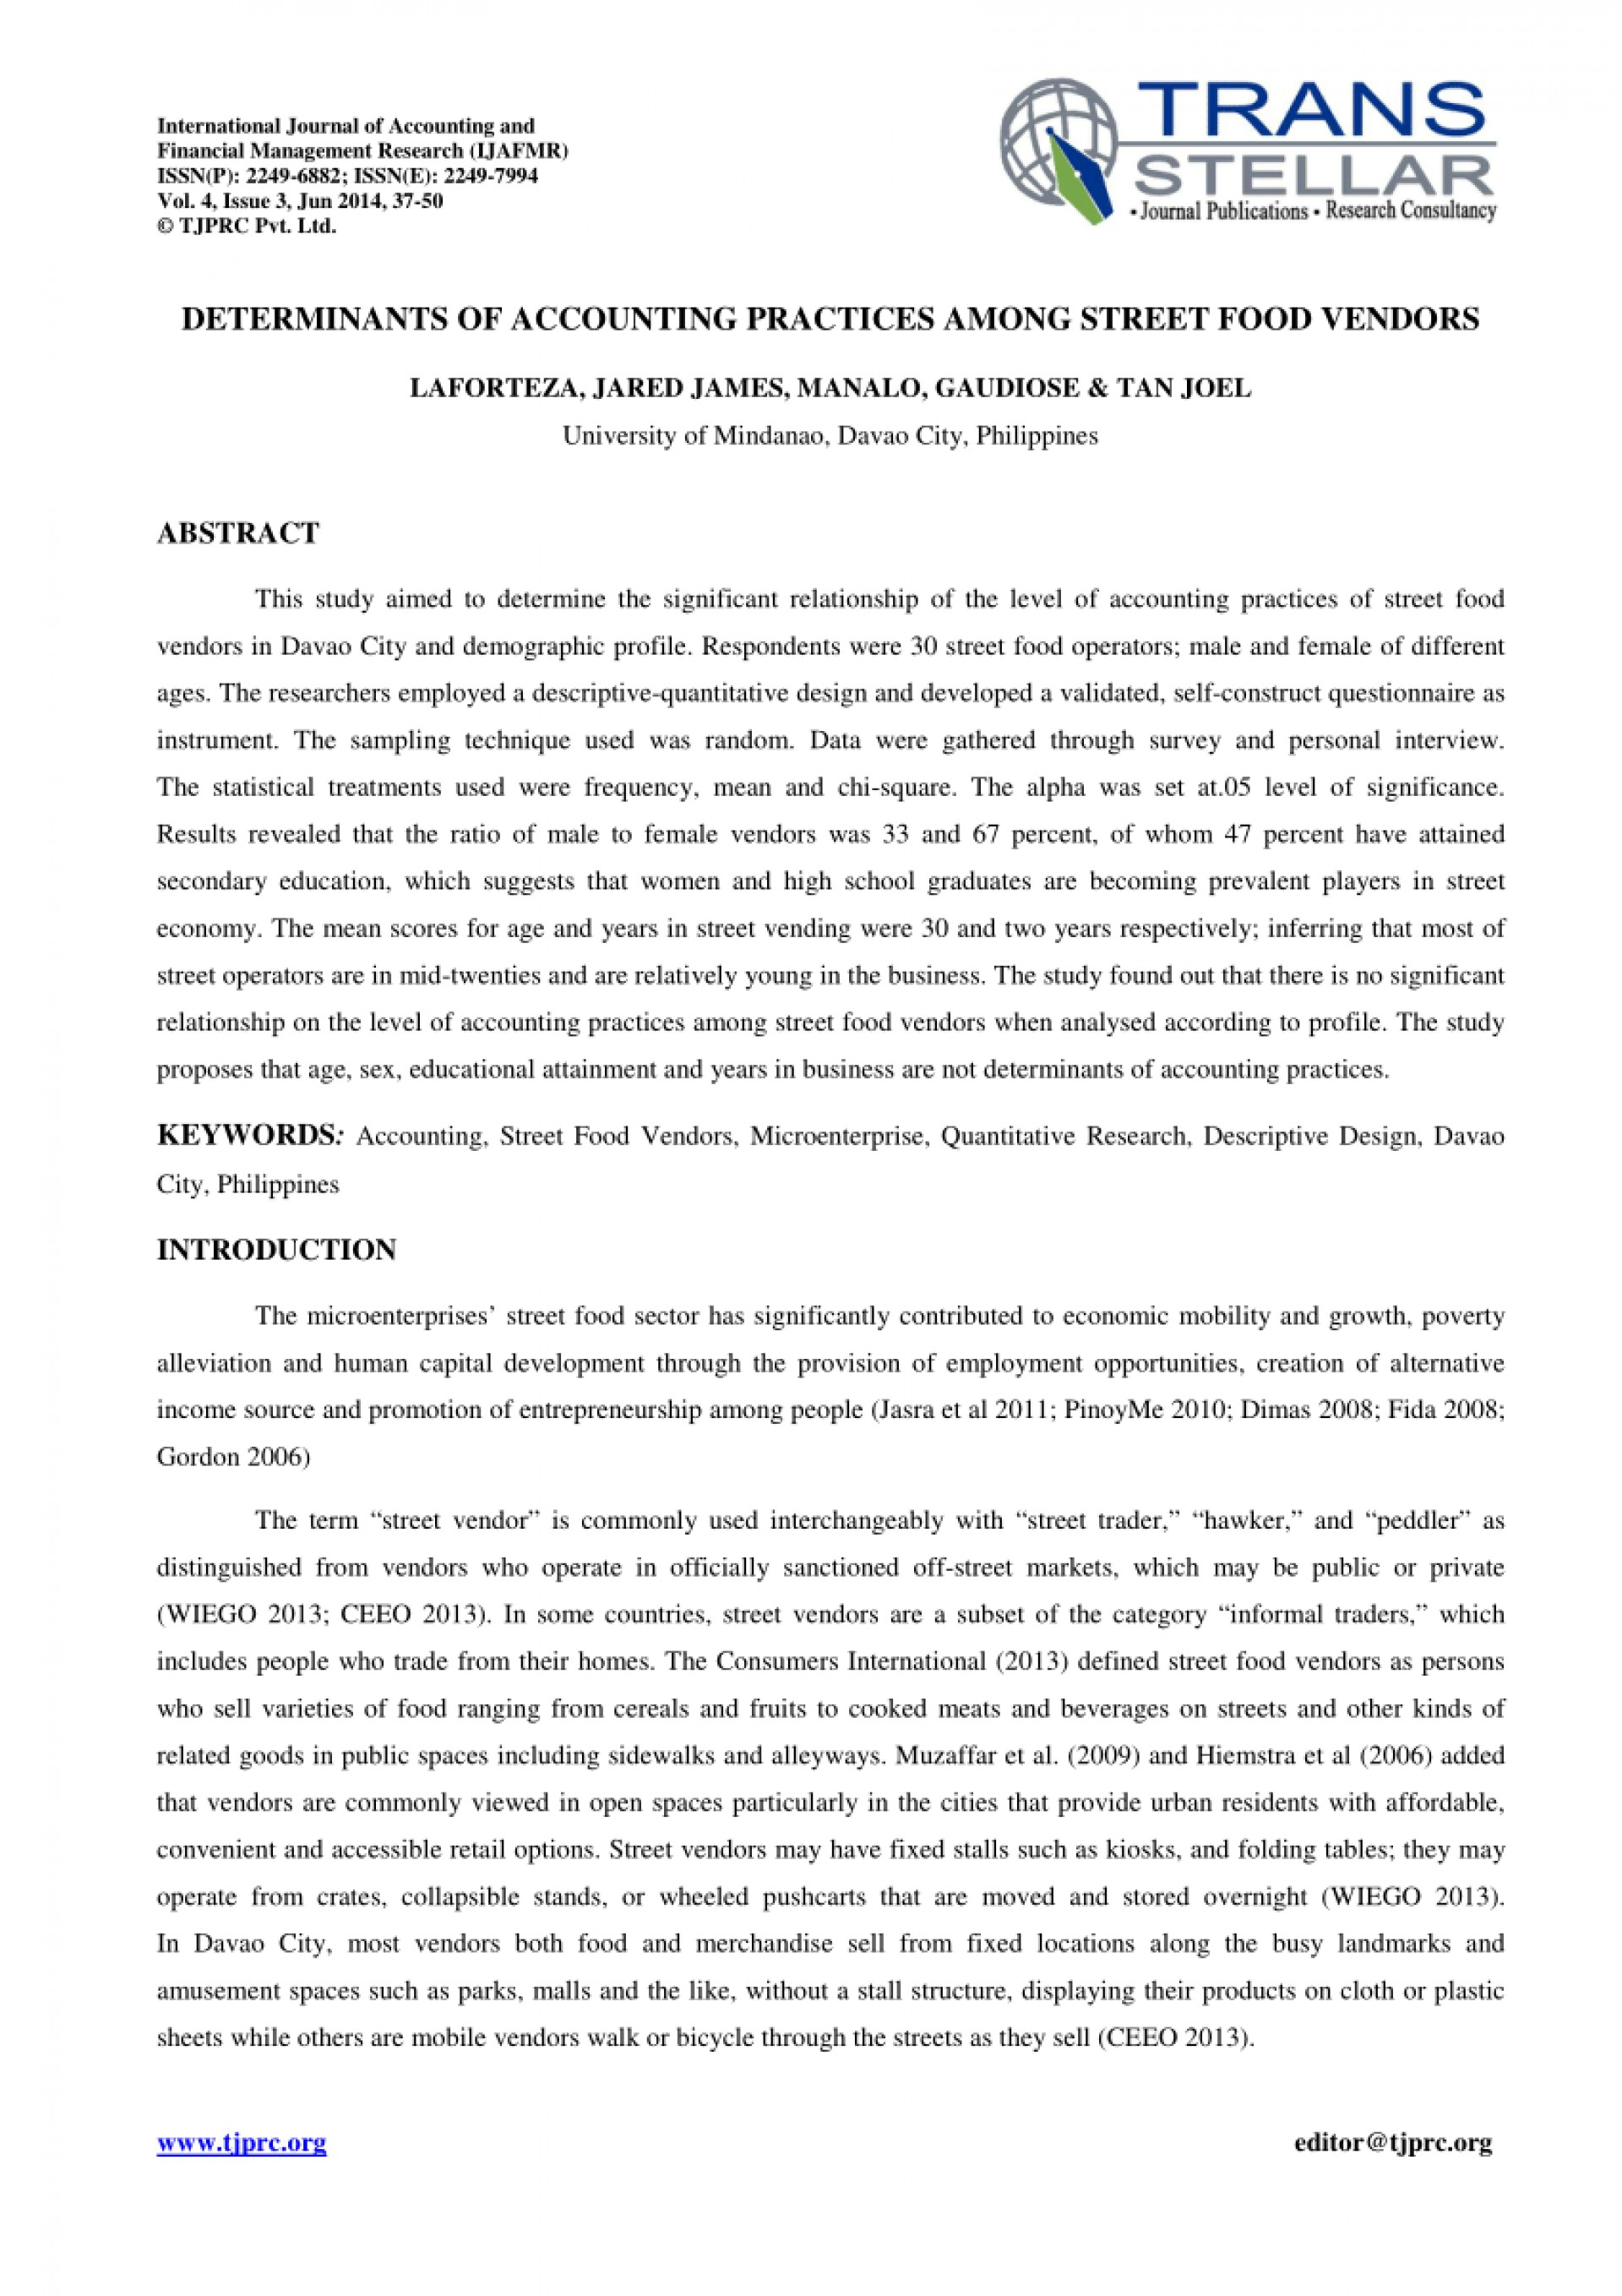 001 Accounting Research Paper Pdf Philippines Excellent On Example Sample About 1920